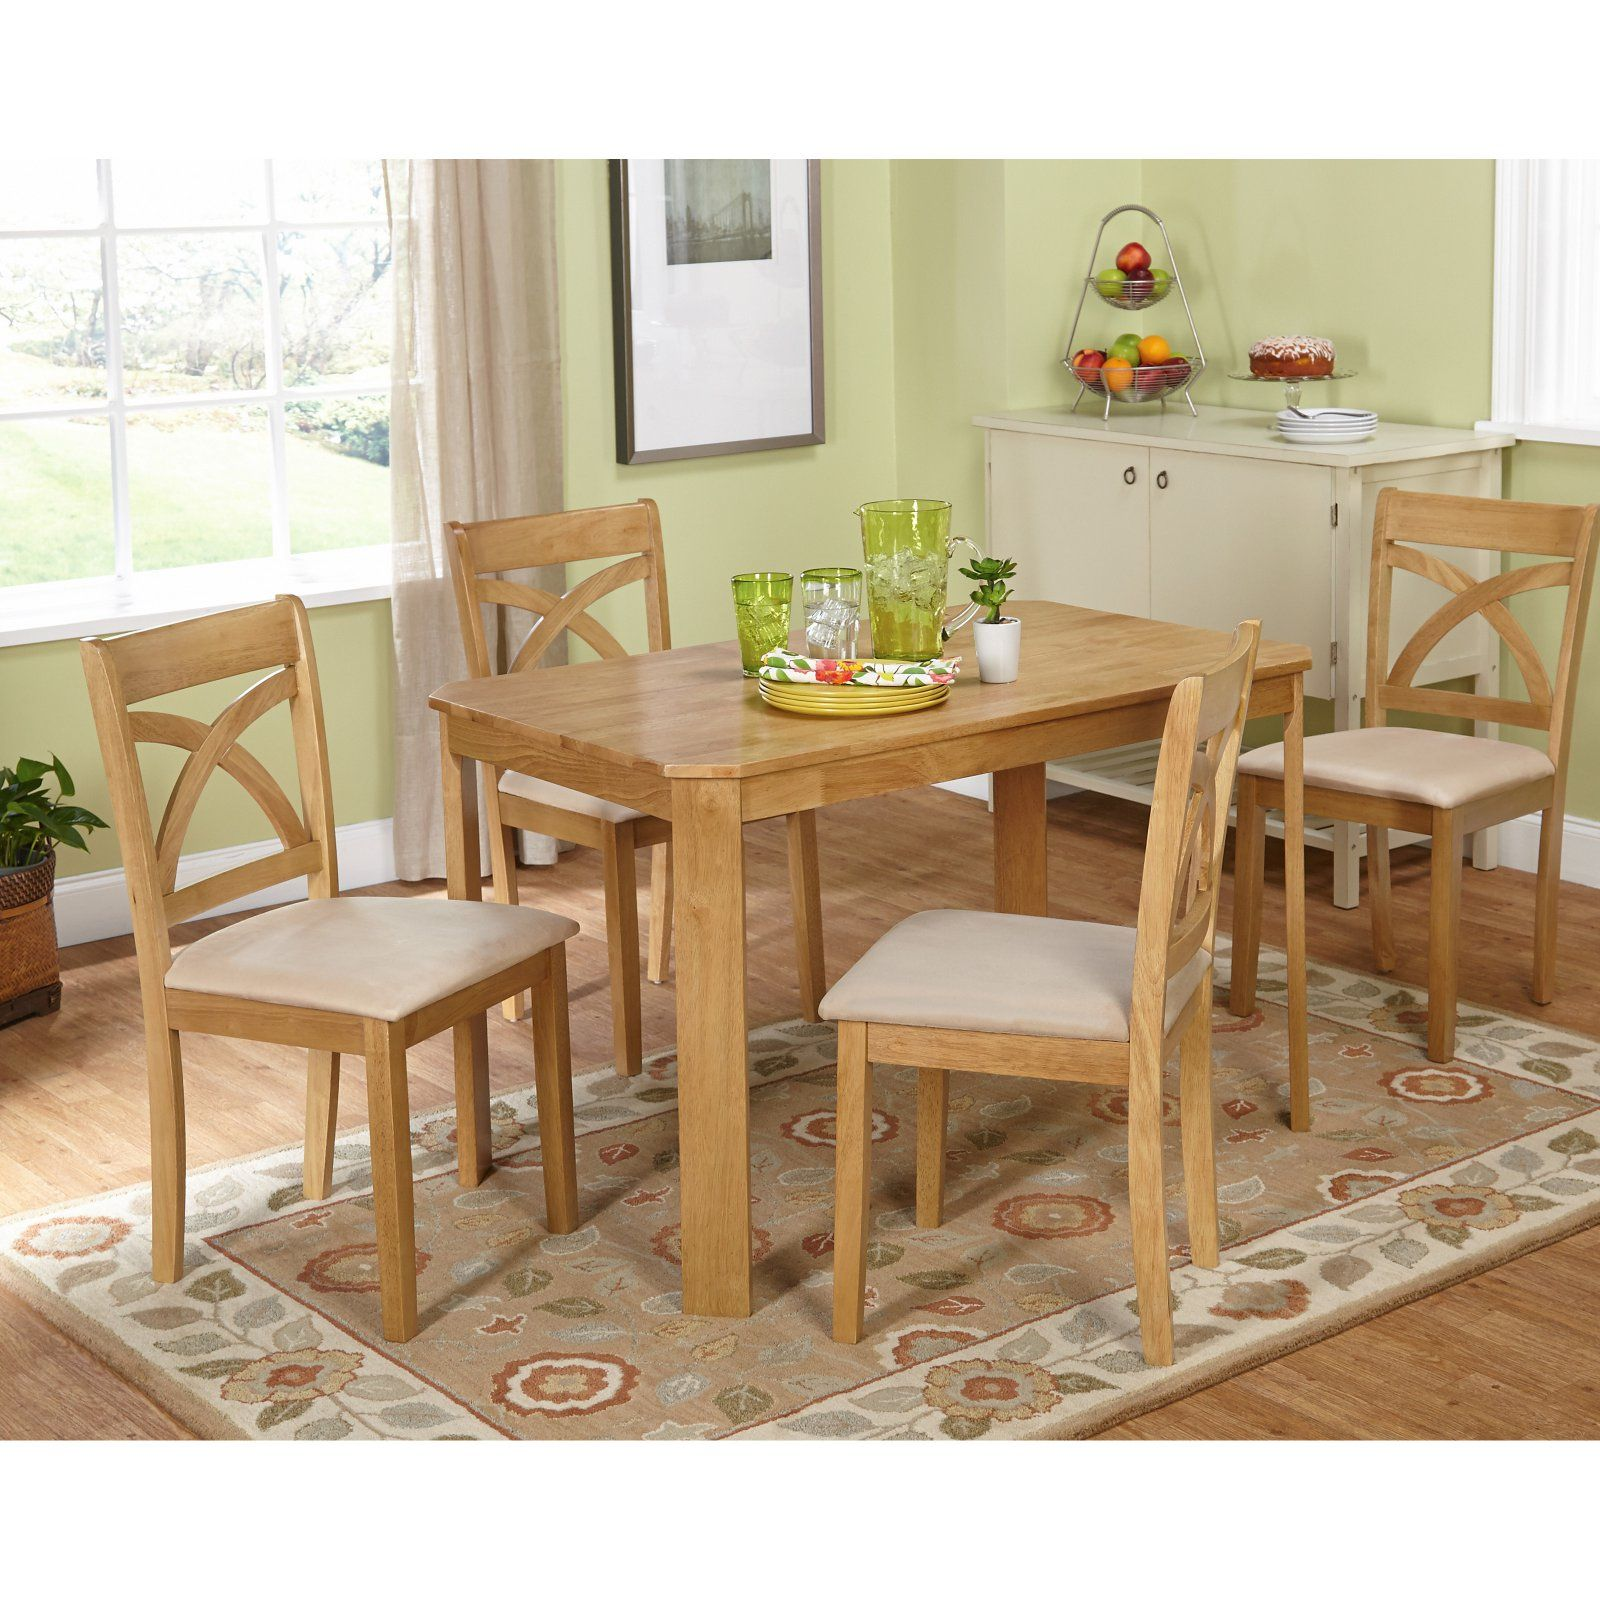 Target Marketing Systems Verbena 5 Piece Dining Table Set